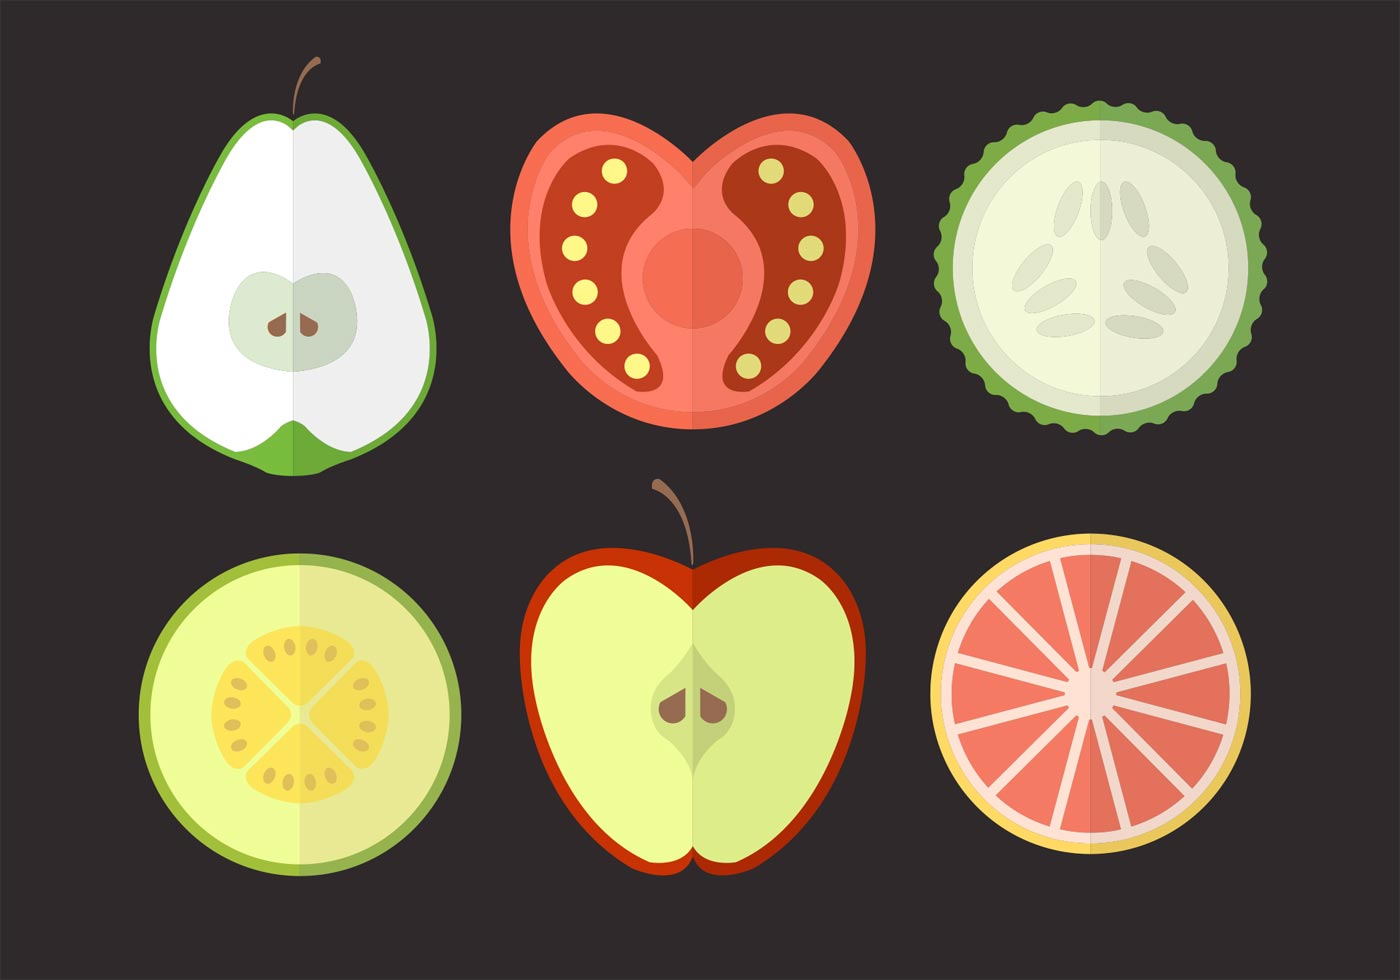 See cute apple stock video clips. Fruits and Vegetables 91653 Vector Art at Vecteezy